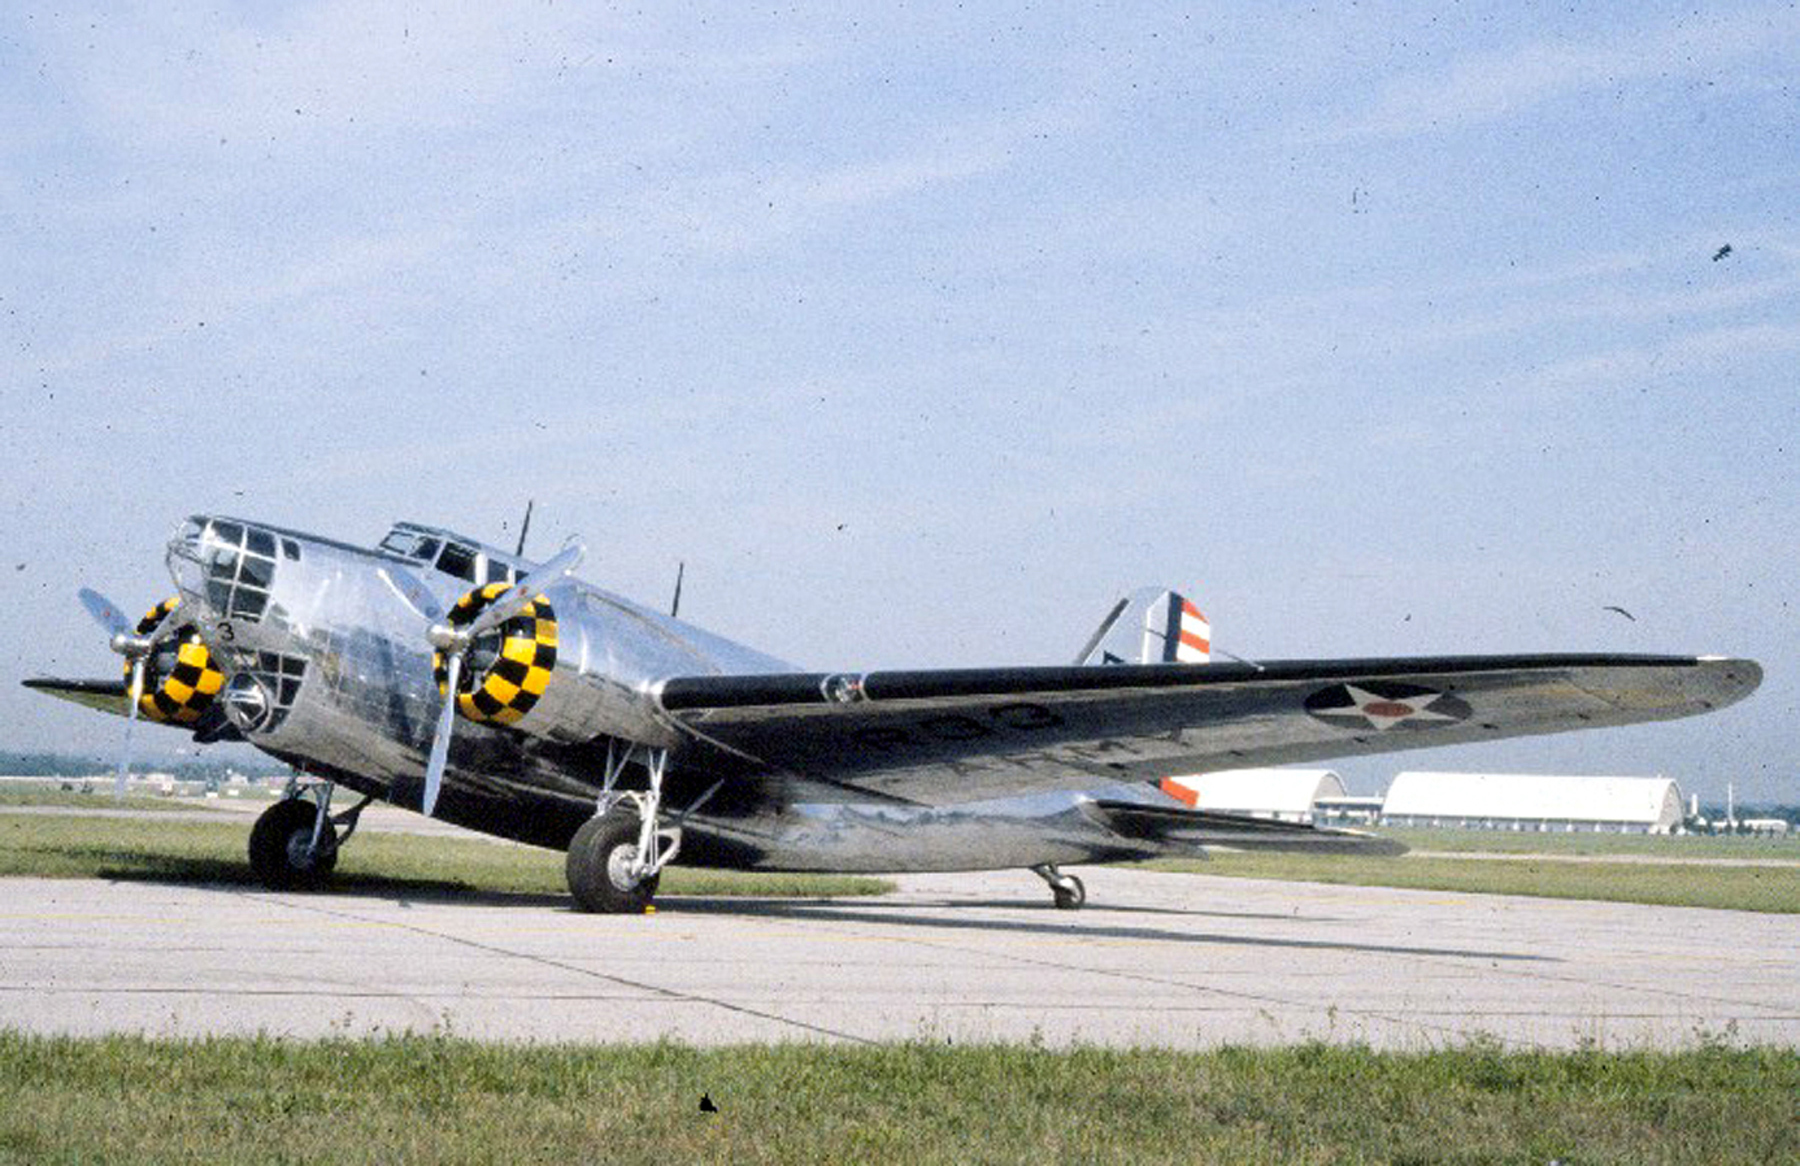 National Air Force Museum >> Douglas B-18 Bolo > National Museum of the US Air Force™ > Display